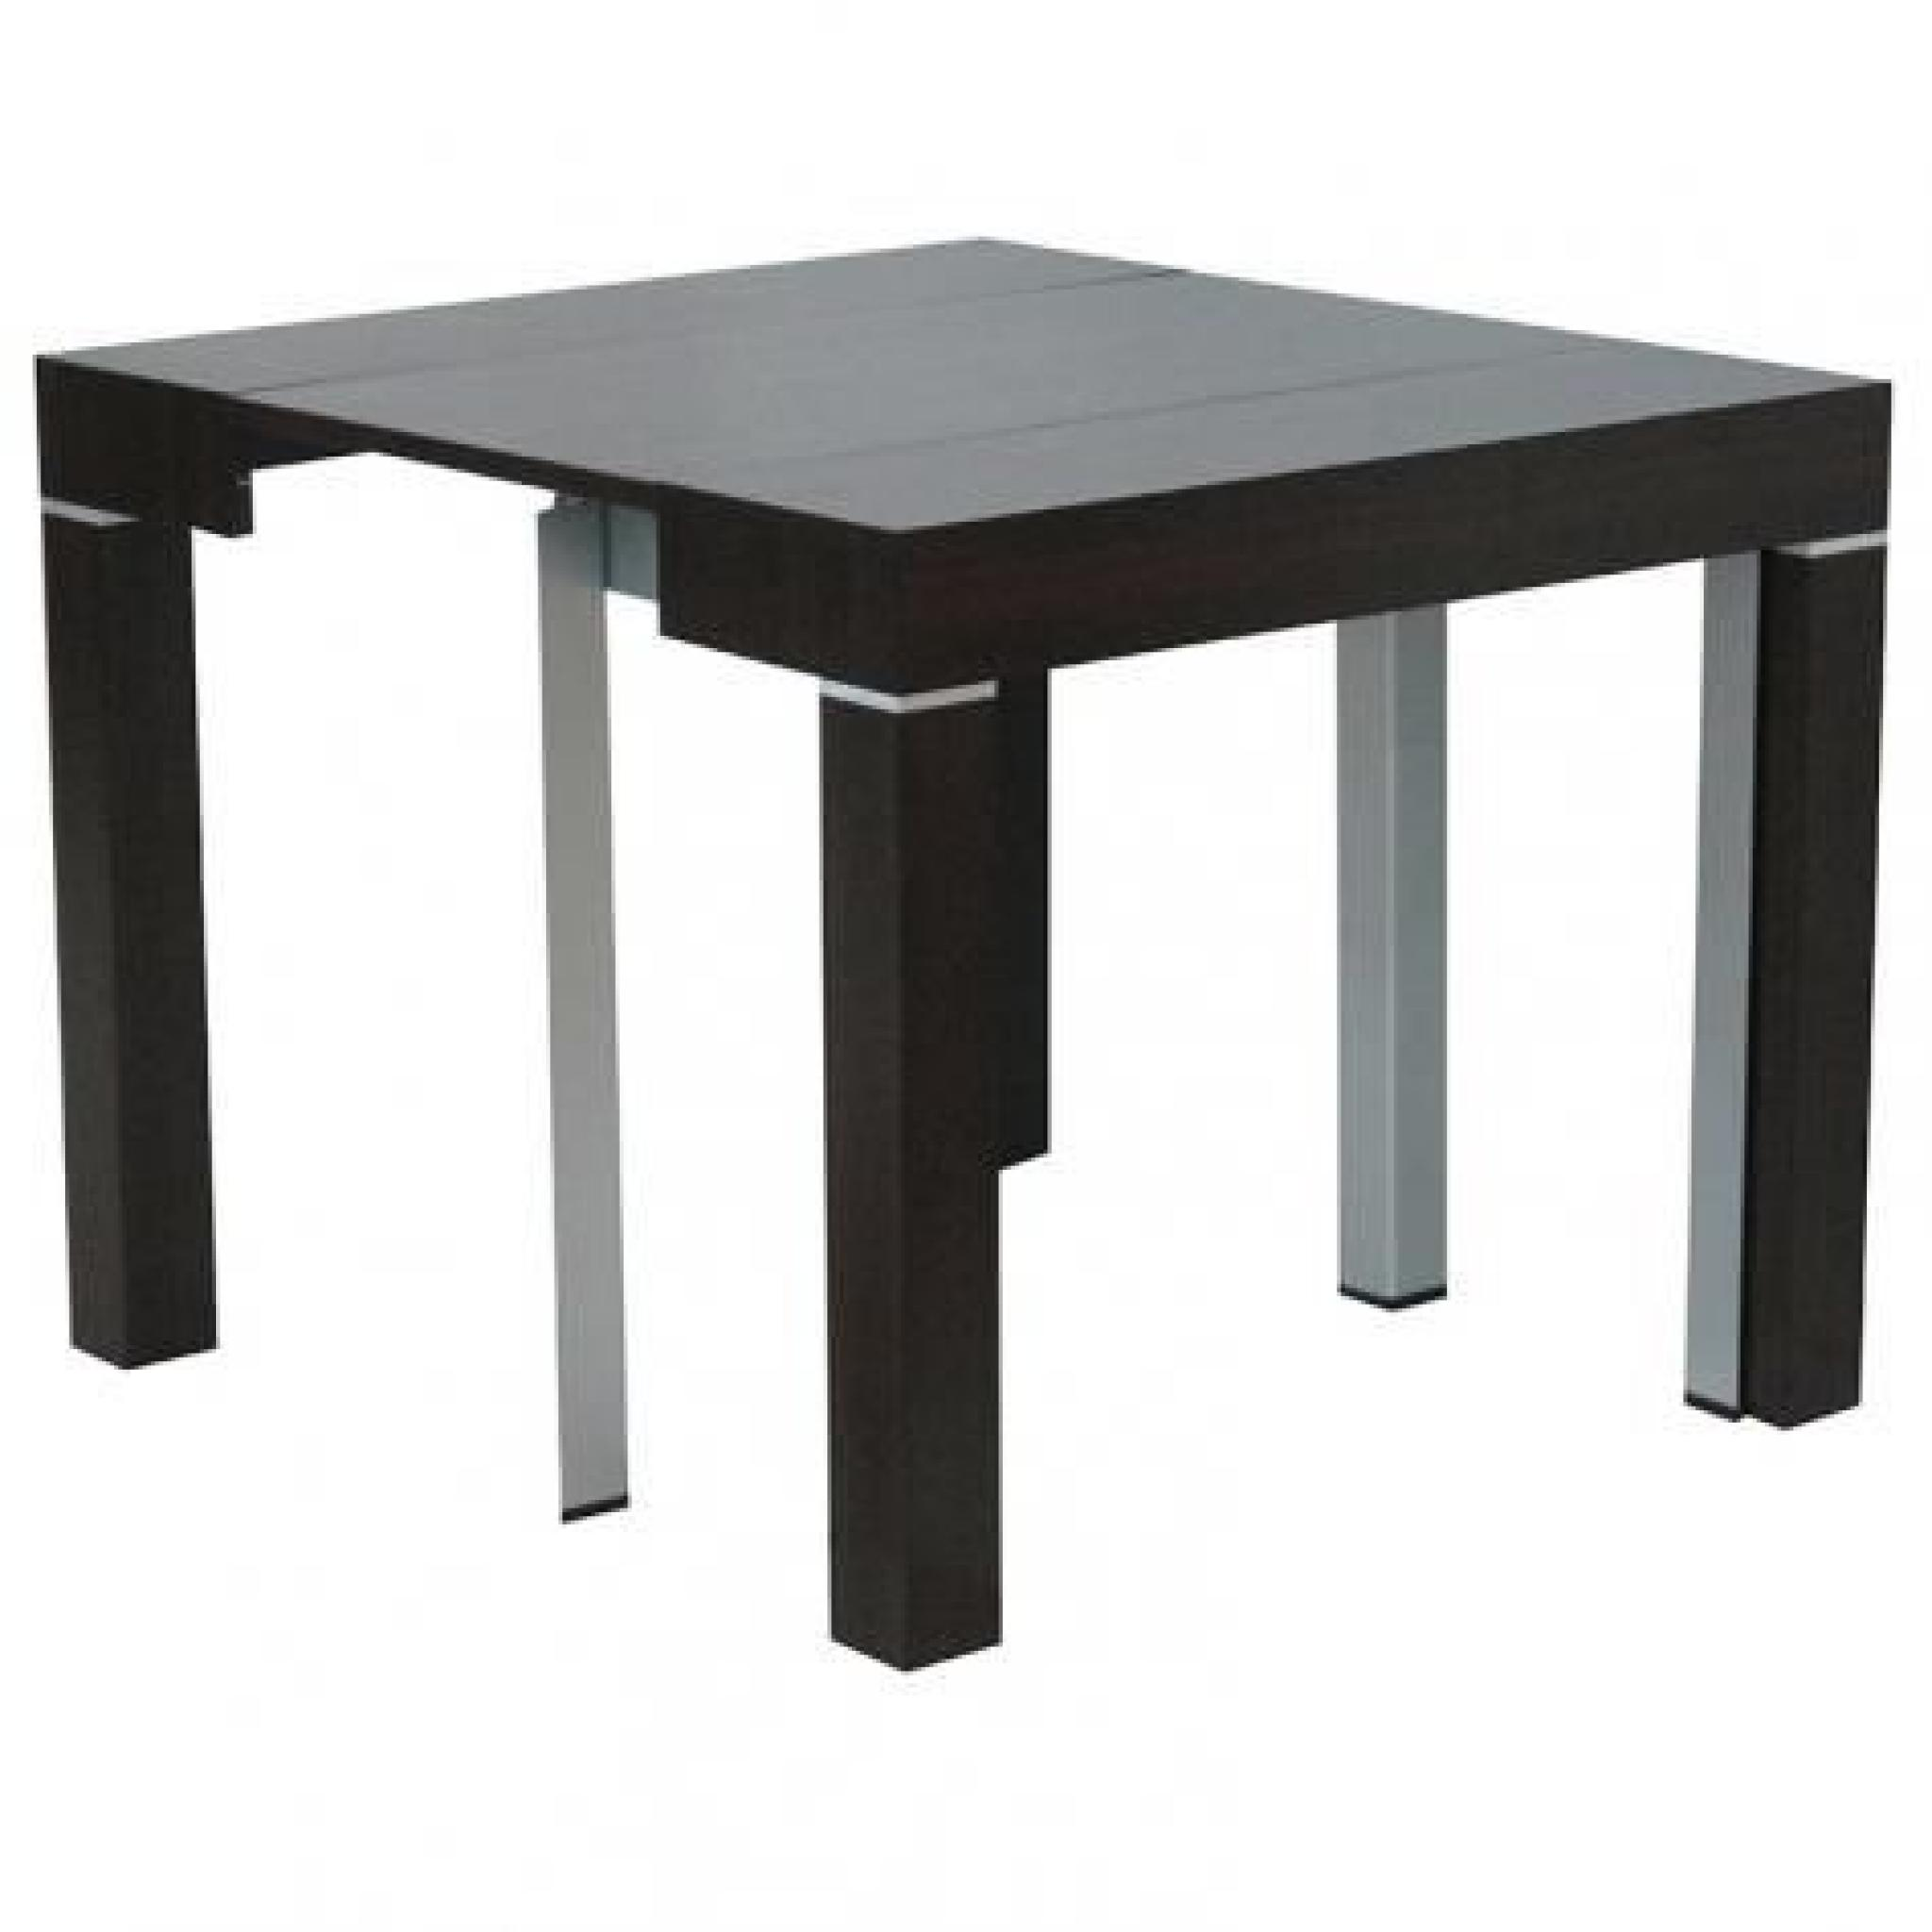 table console extensible wenge avec 4 rallonges alesia achat vente ensemble salle a manger pas. Black Bedroom Furniture Sets. Home Design Ideas